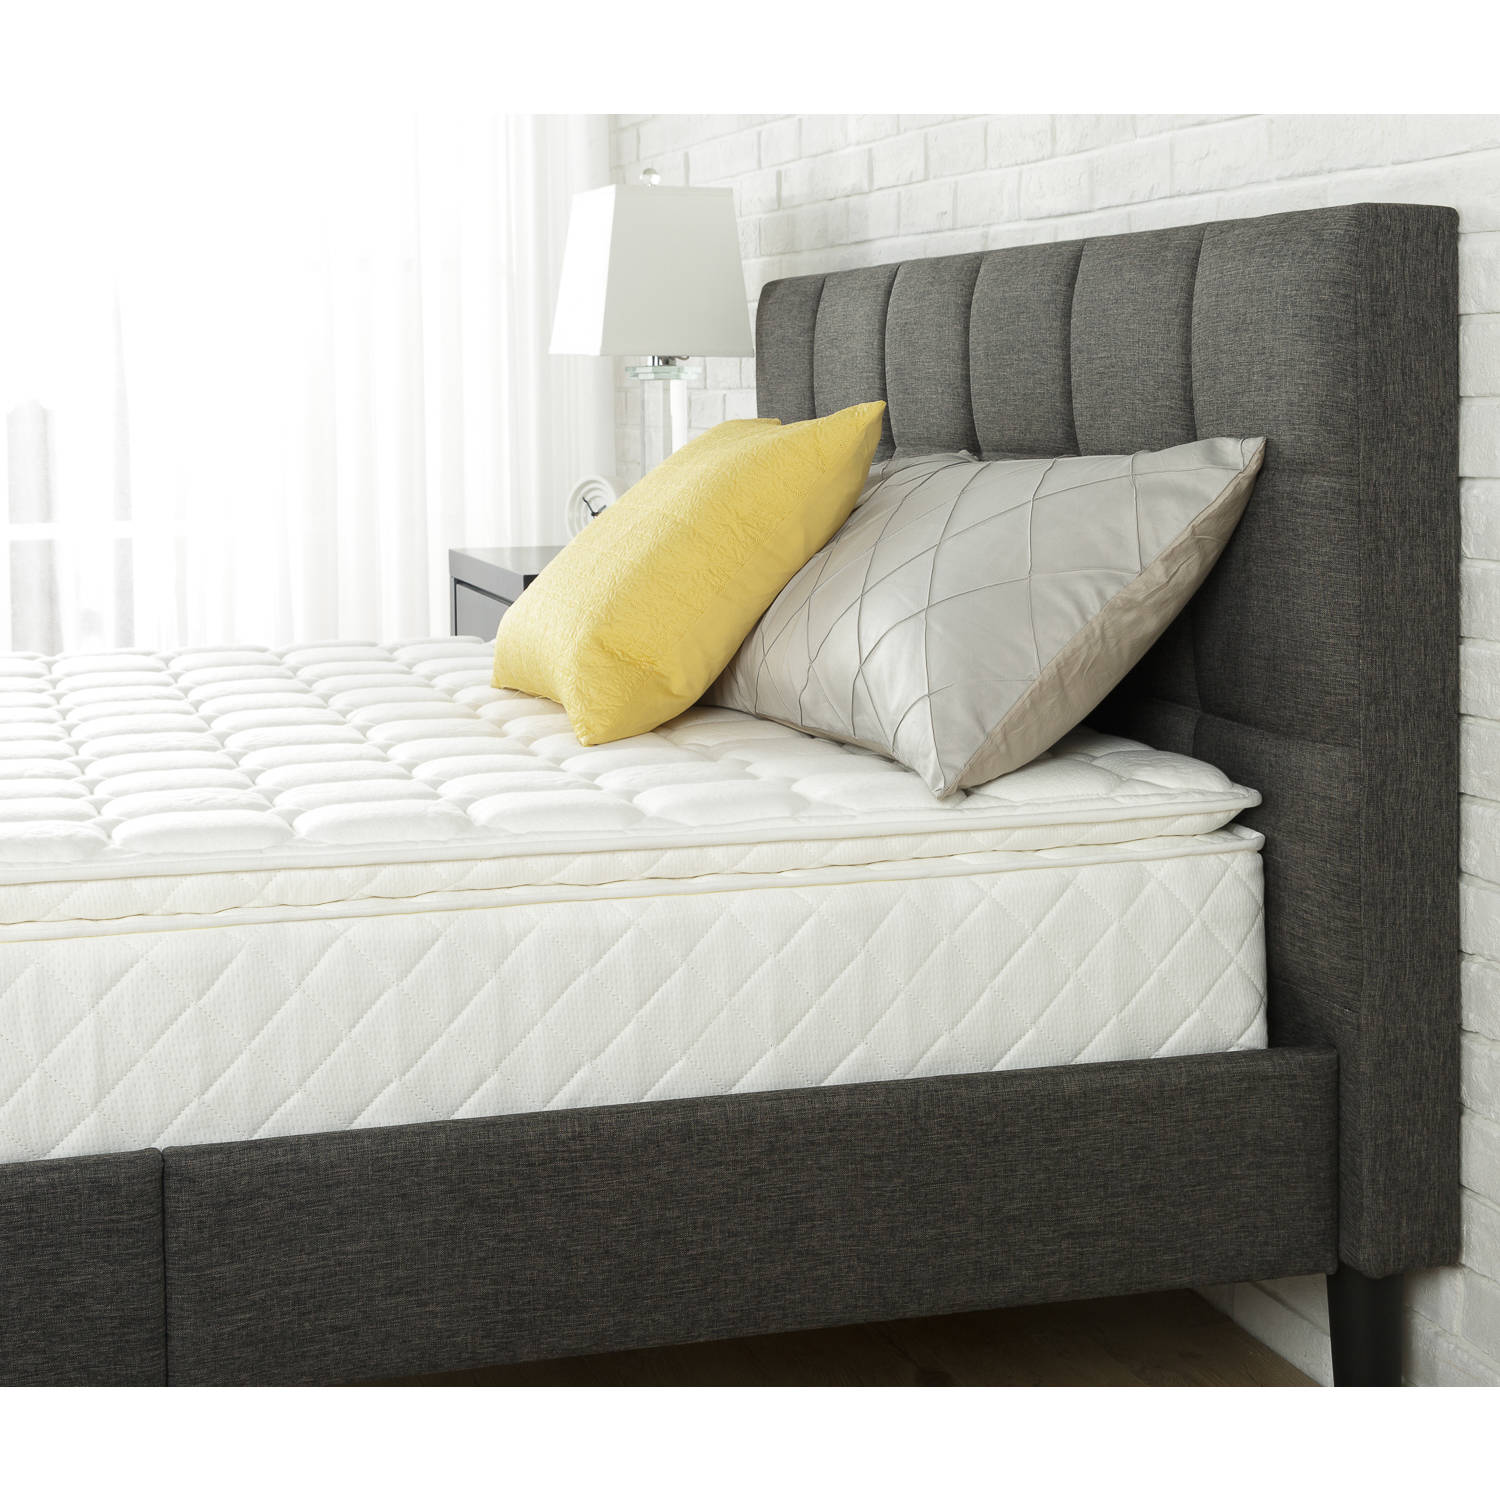 bedroom product store furniture top pacifica pillow outlet your topper mattress majestic